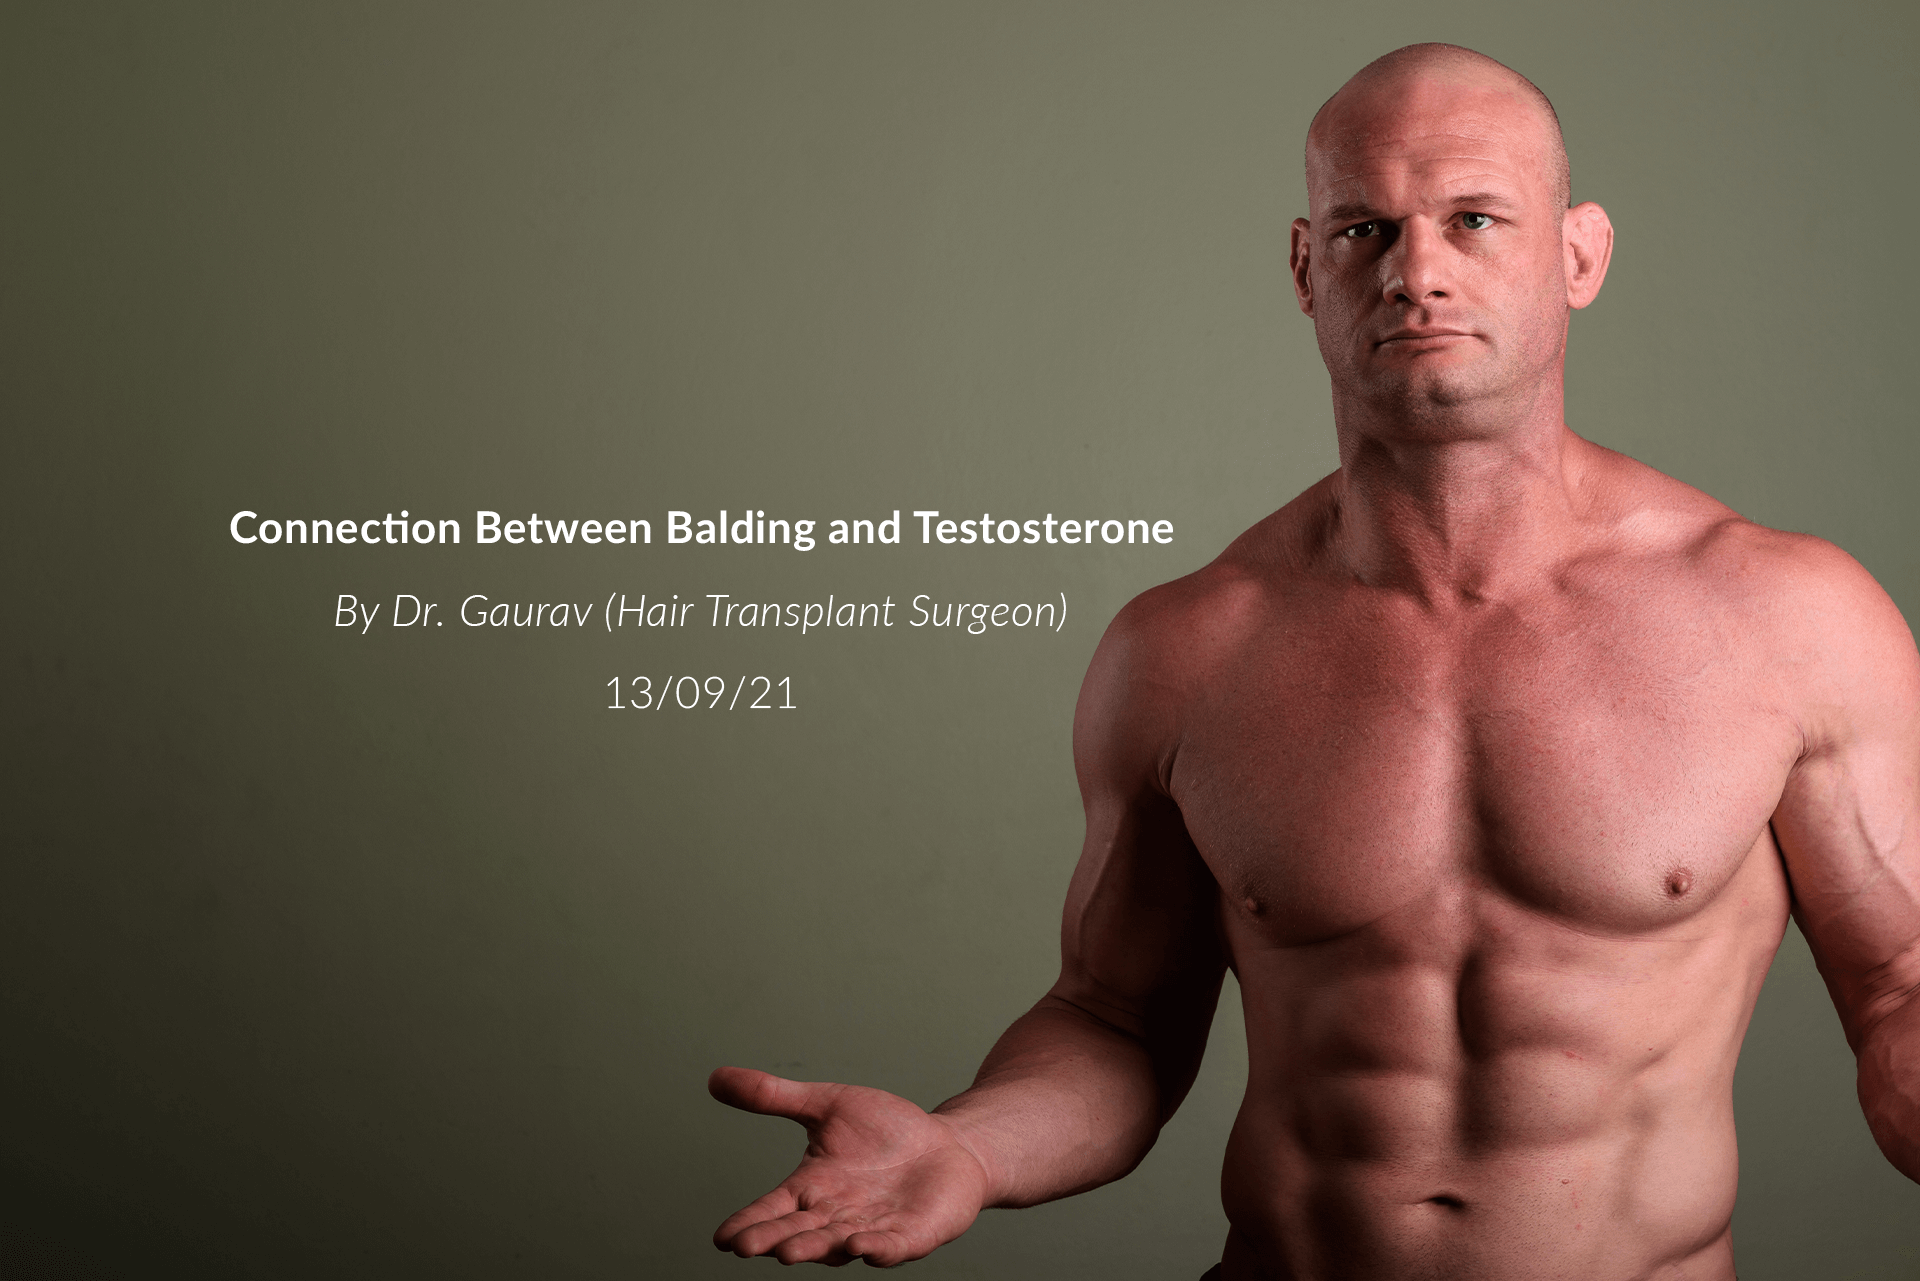 Connection Between Balding and Testosterone